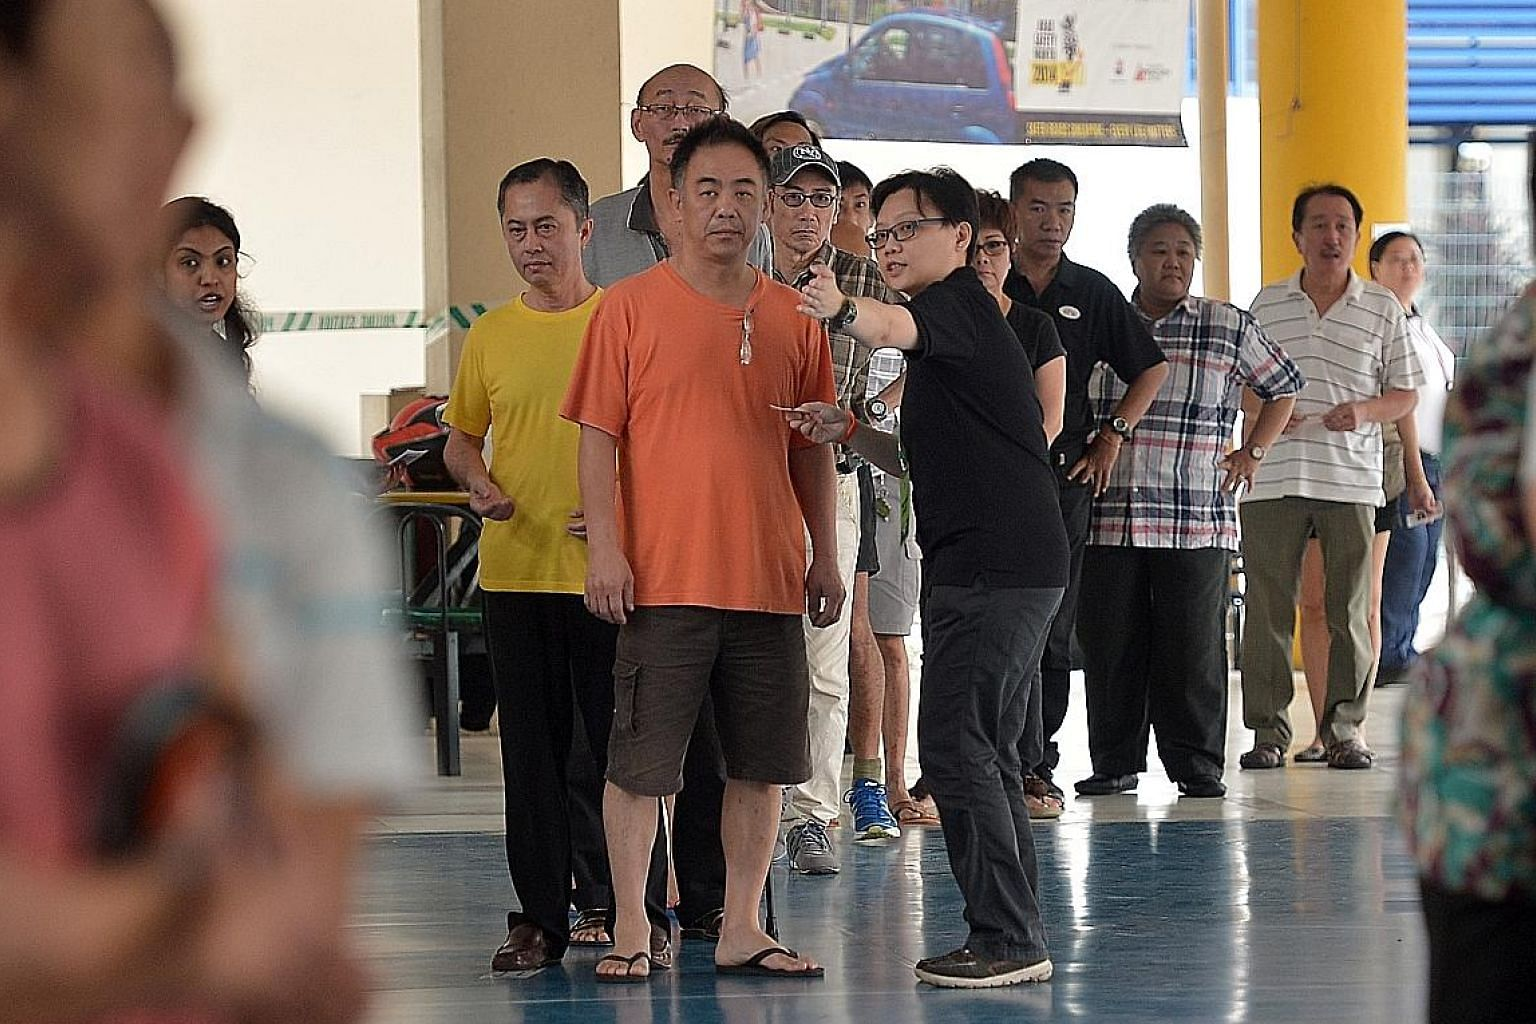 This 2015 photo shows people waiting to cast their ballots at Pei Chun Public School. Experts noted that passage of the Parliamentary Elections (Covid-19 Special Arrangements) Bill is a necessary step before the general election.